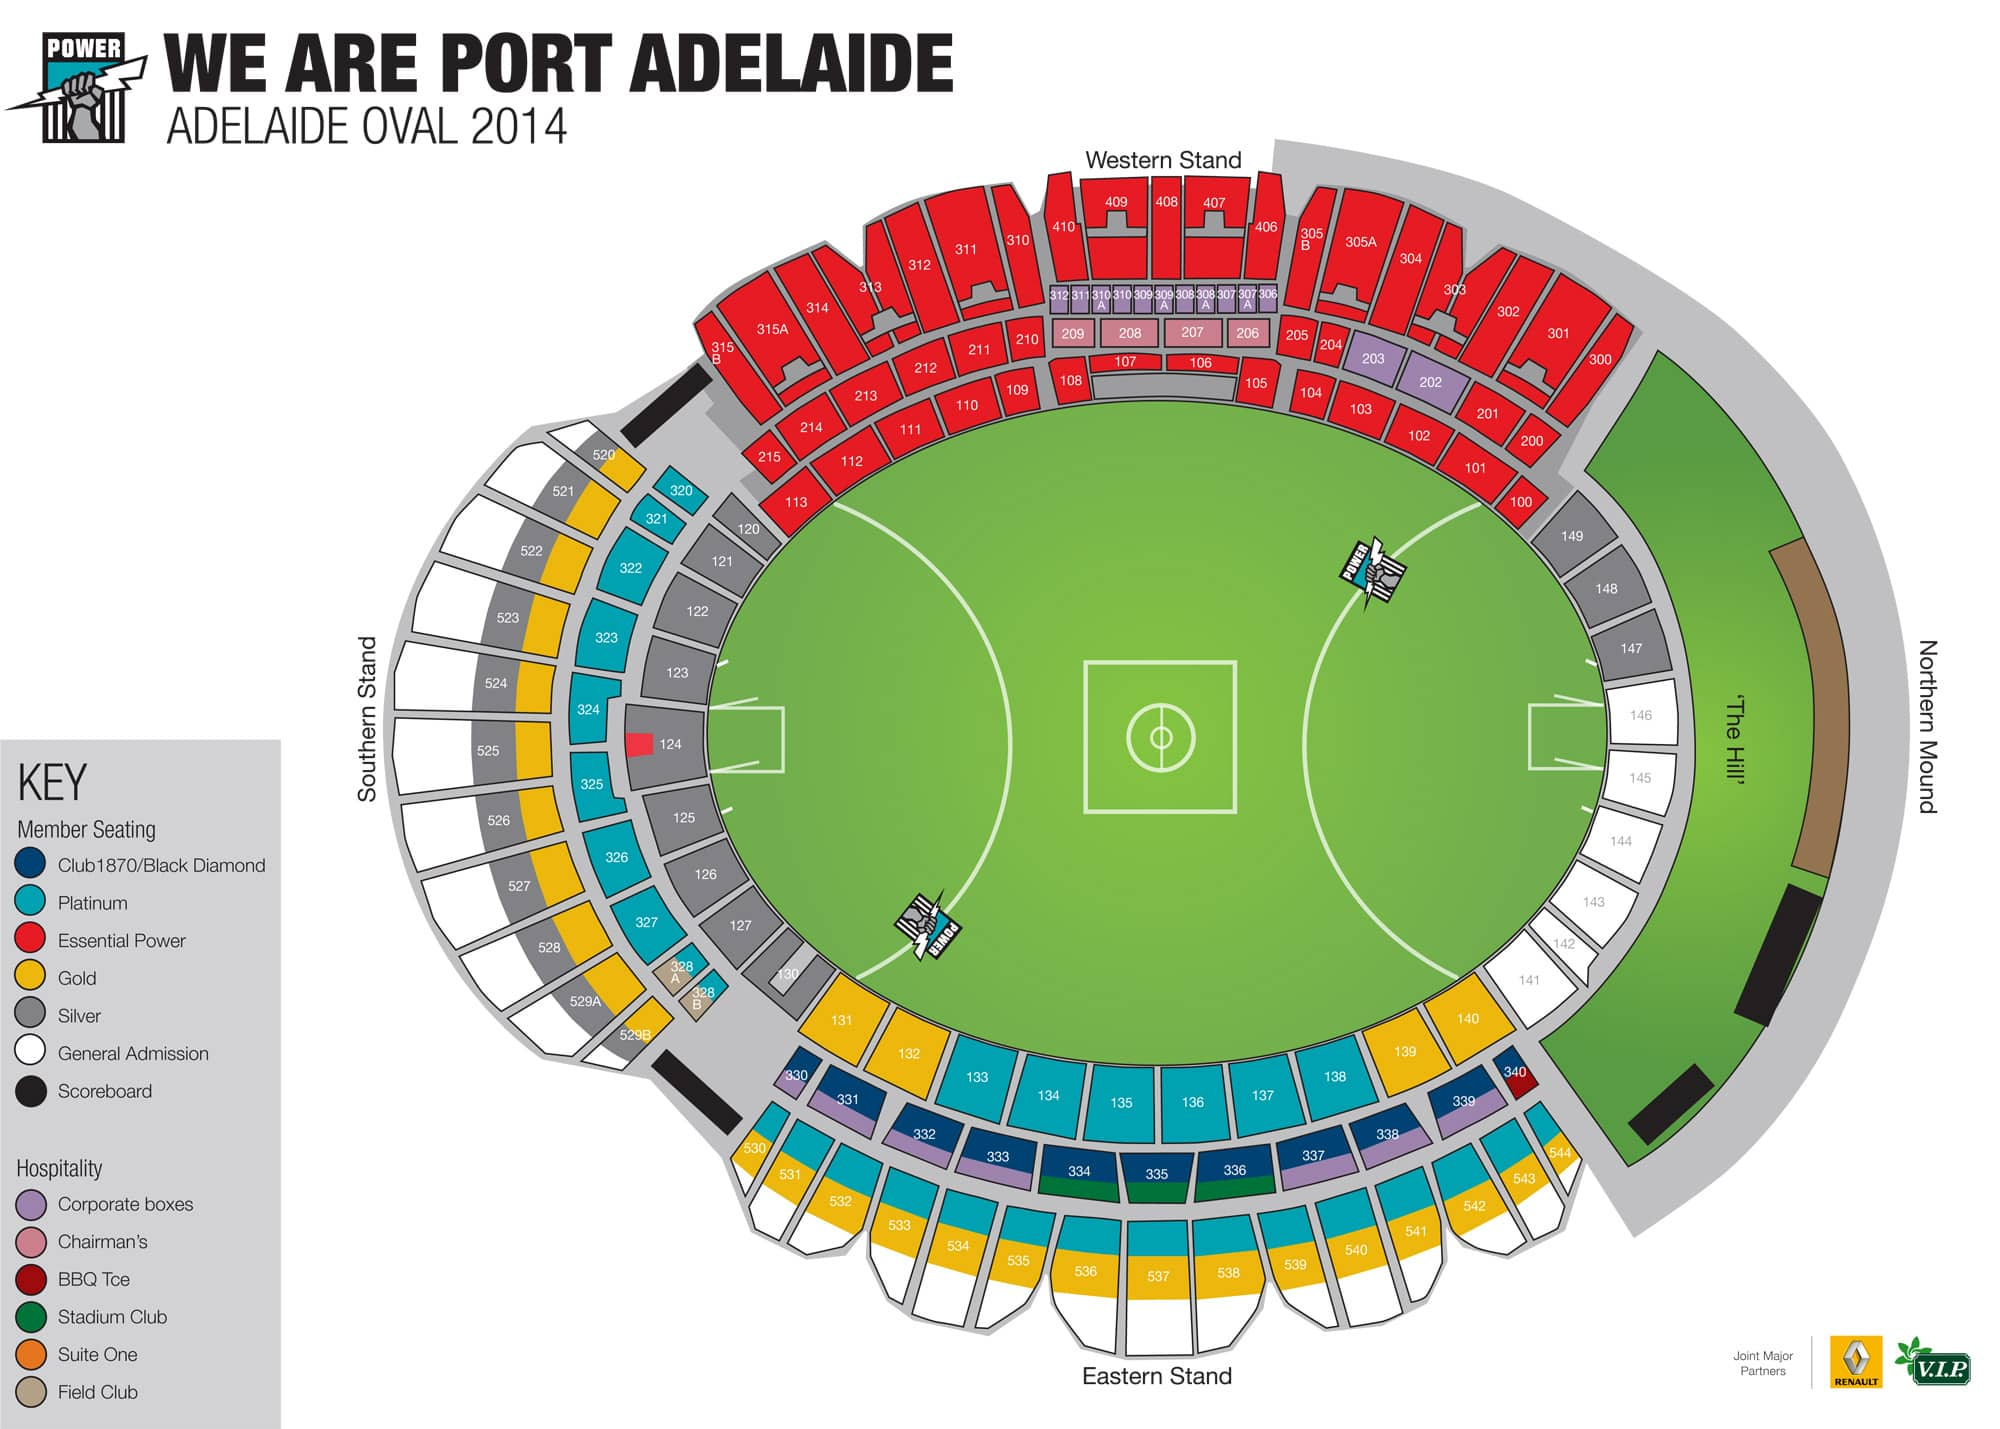 Adelaide Oval Map Adelaide Oval update   August 9   portadelaidefc.com.au Adelaide Oval Map